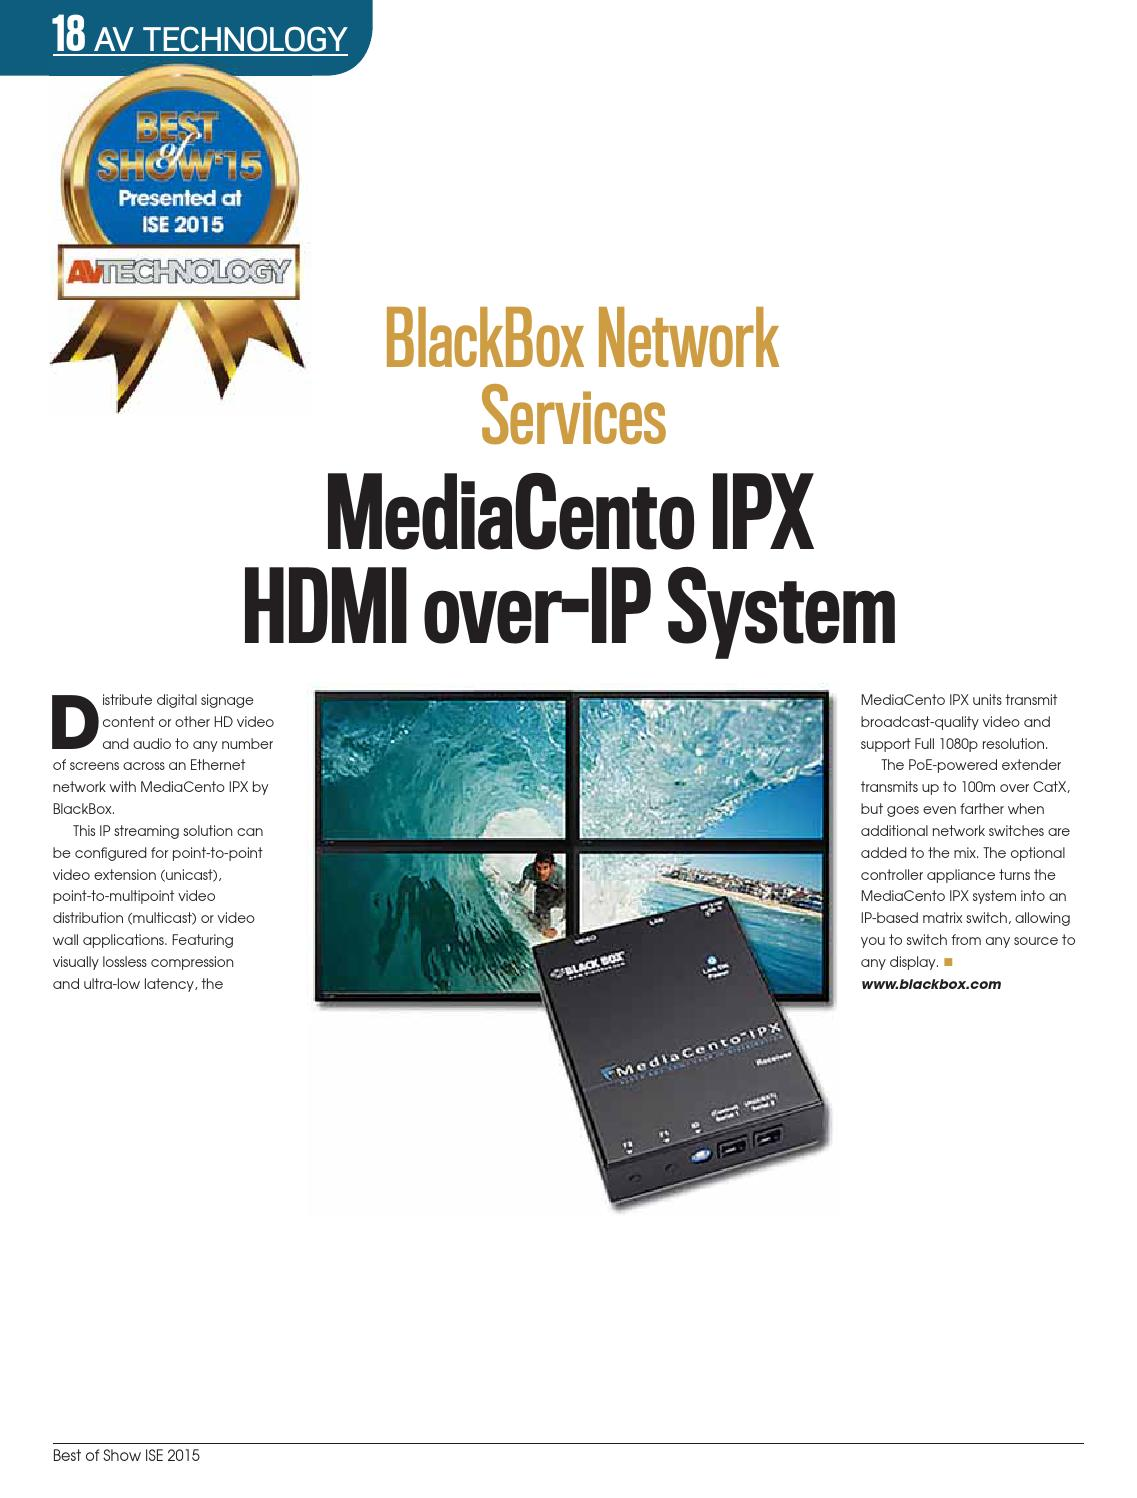 ISE 2015 Best of Show digital edition by Future PLC - issuu